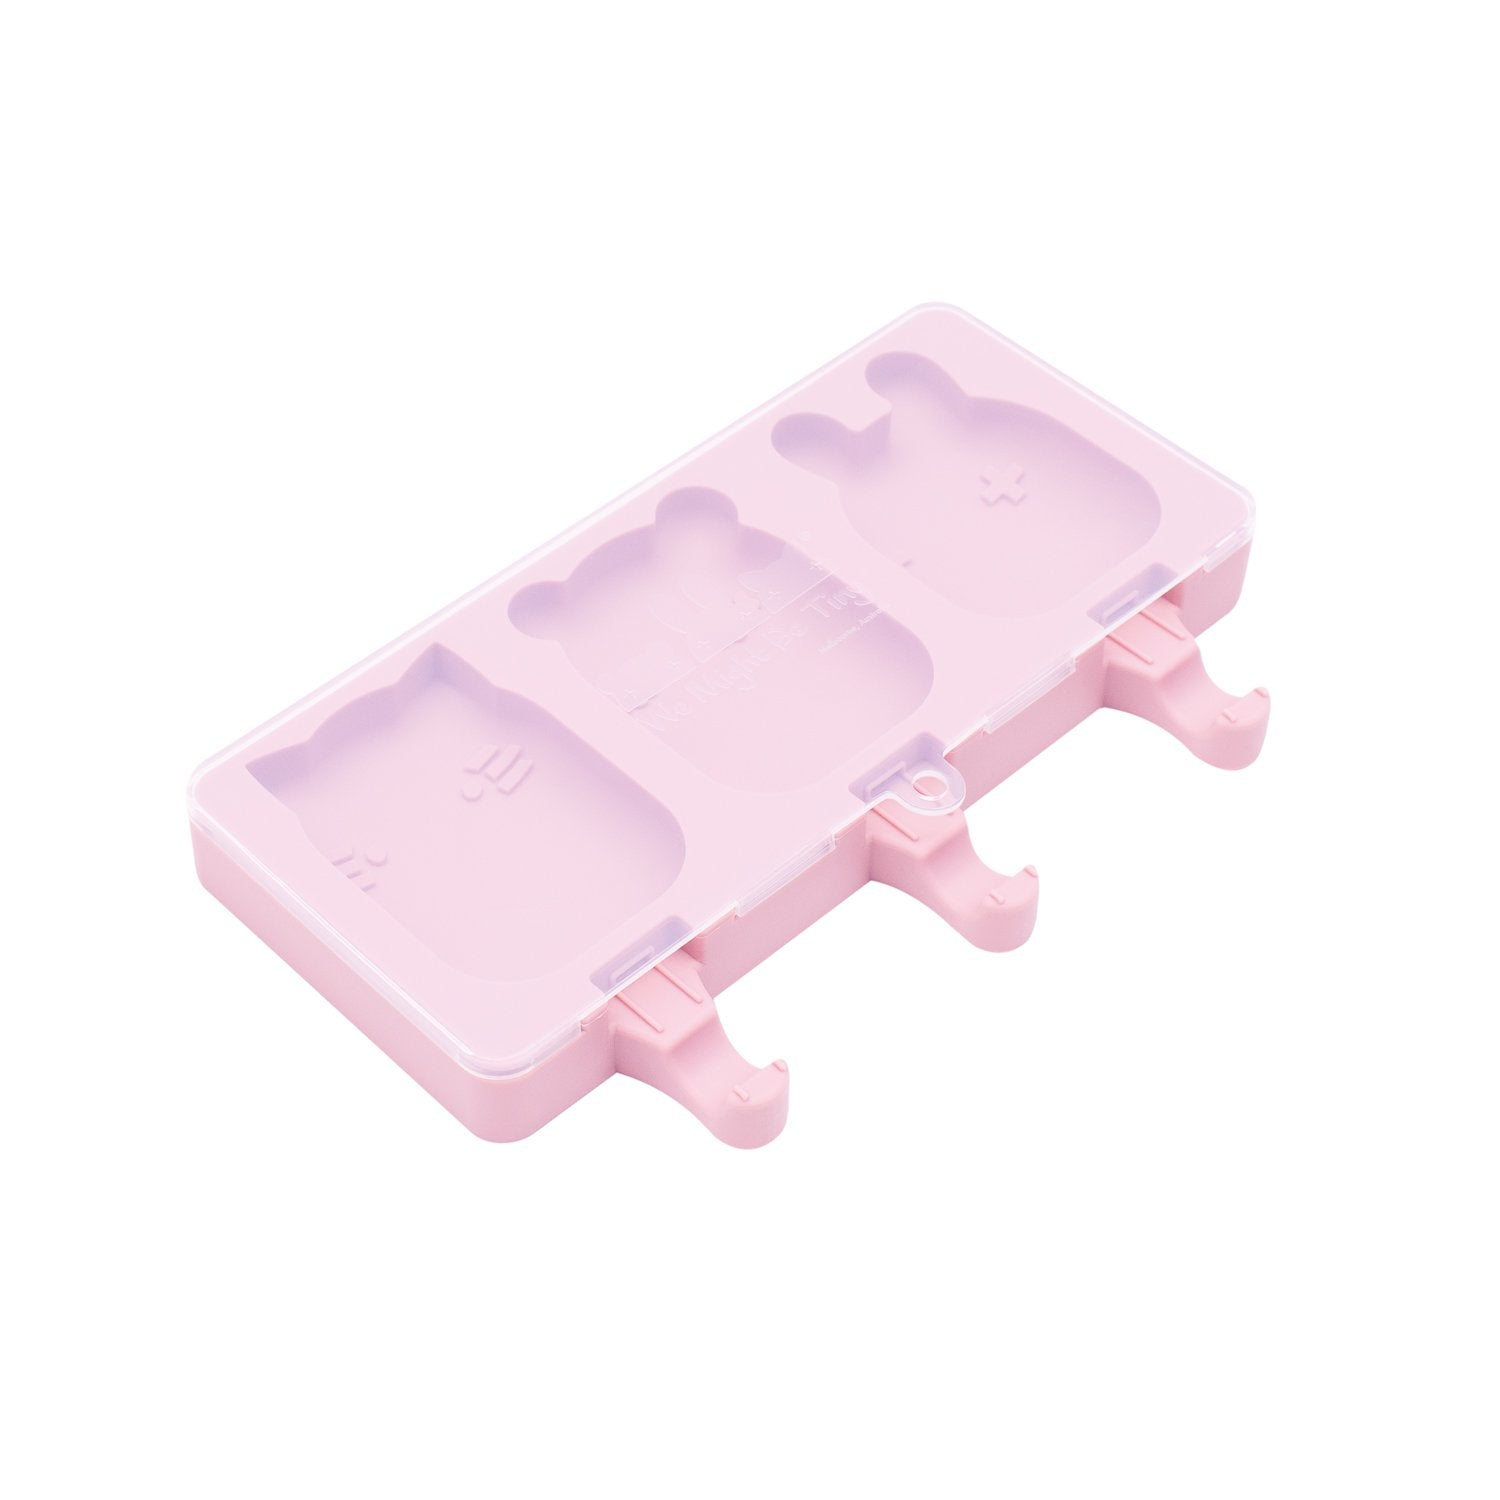 Ice Pop Mold - Powder Pink